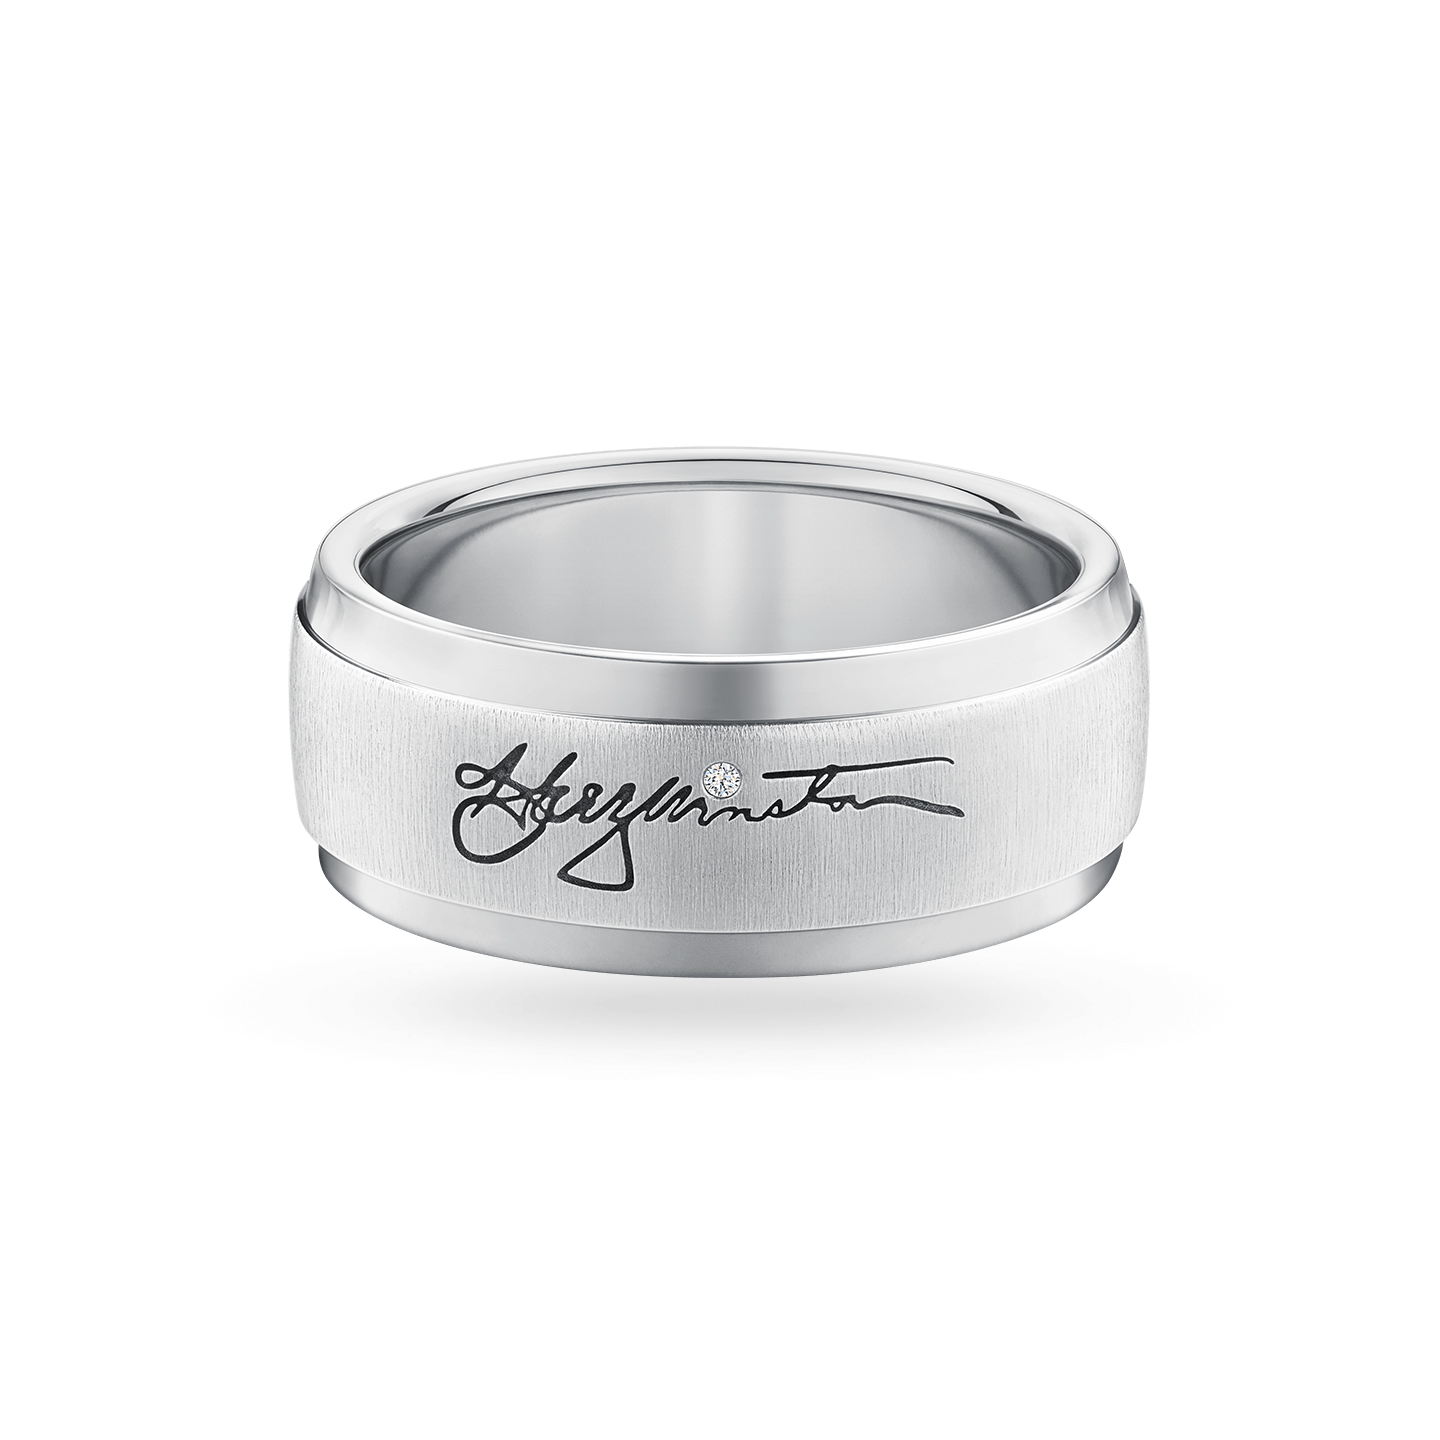 Signature Band Ring, Product Image 1